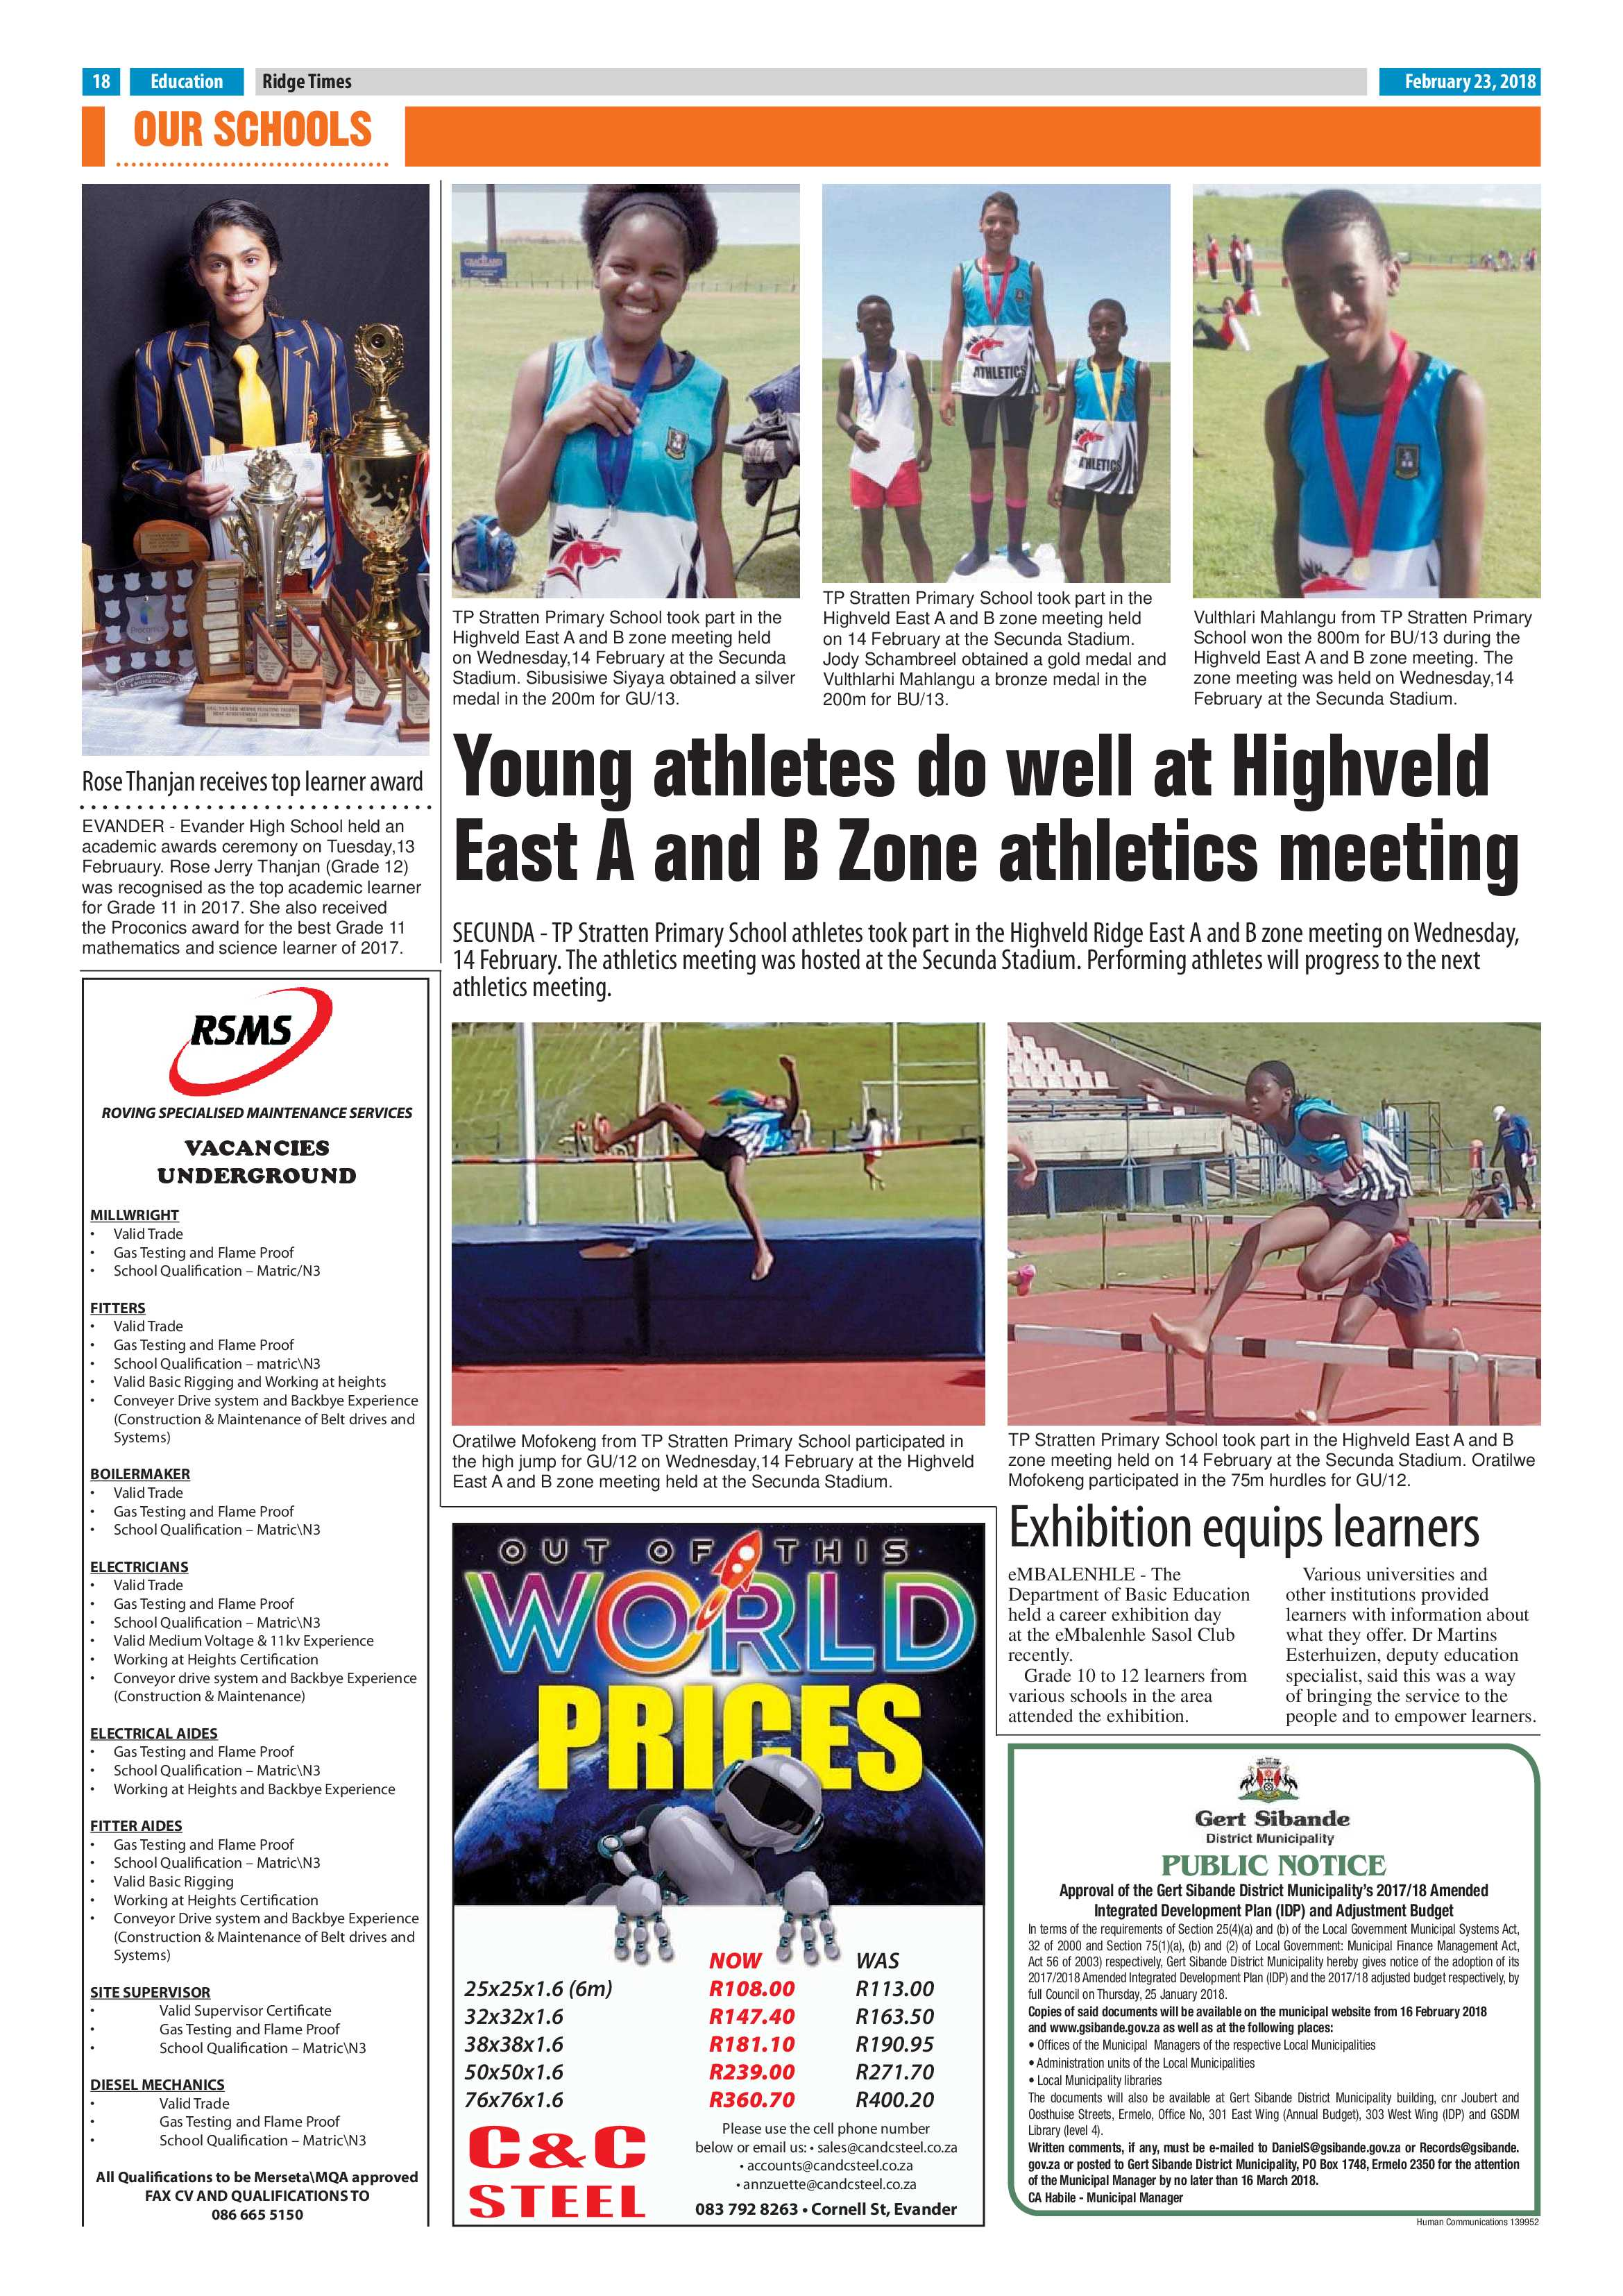 ridge-times-23-february-2018-epapers-page-18